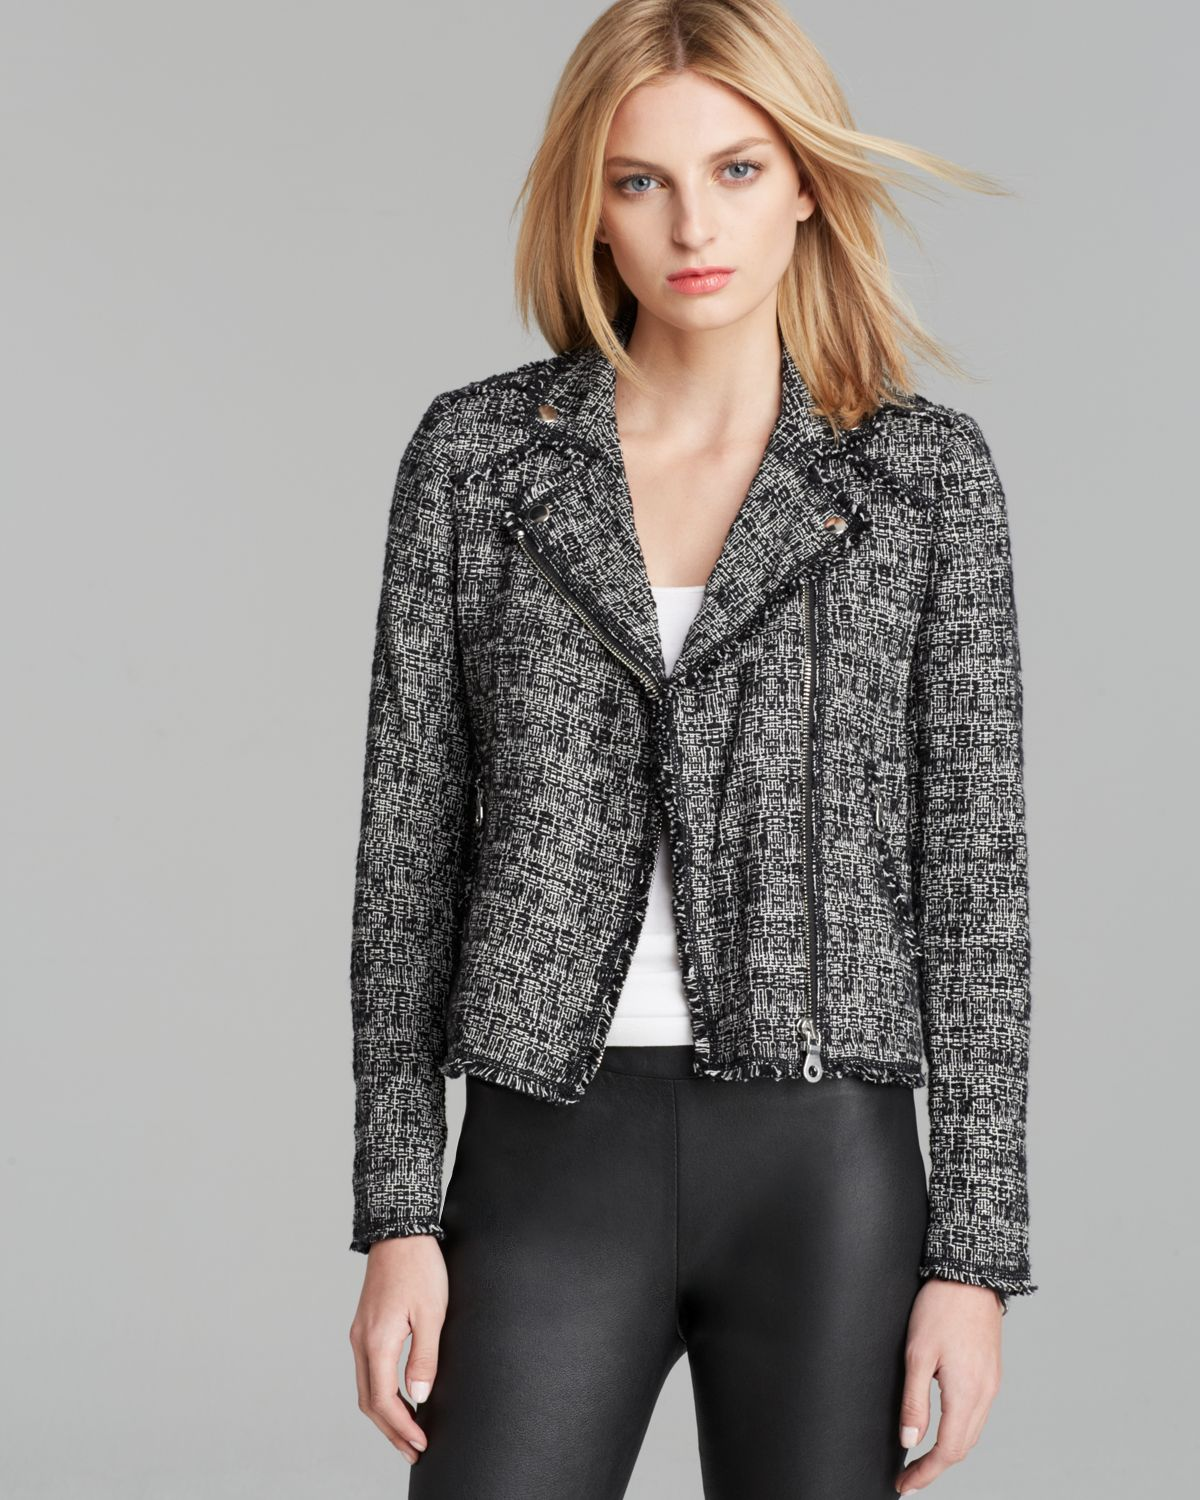 Rebecca Taylor Jacket - Exclusive Tweed Moto | Bloomingdale's